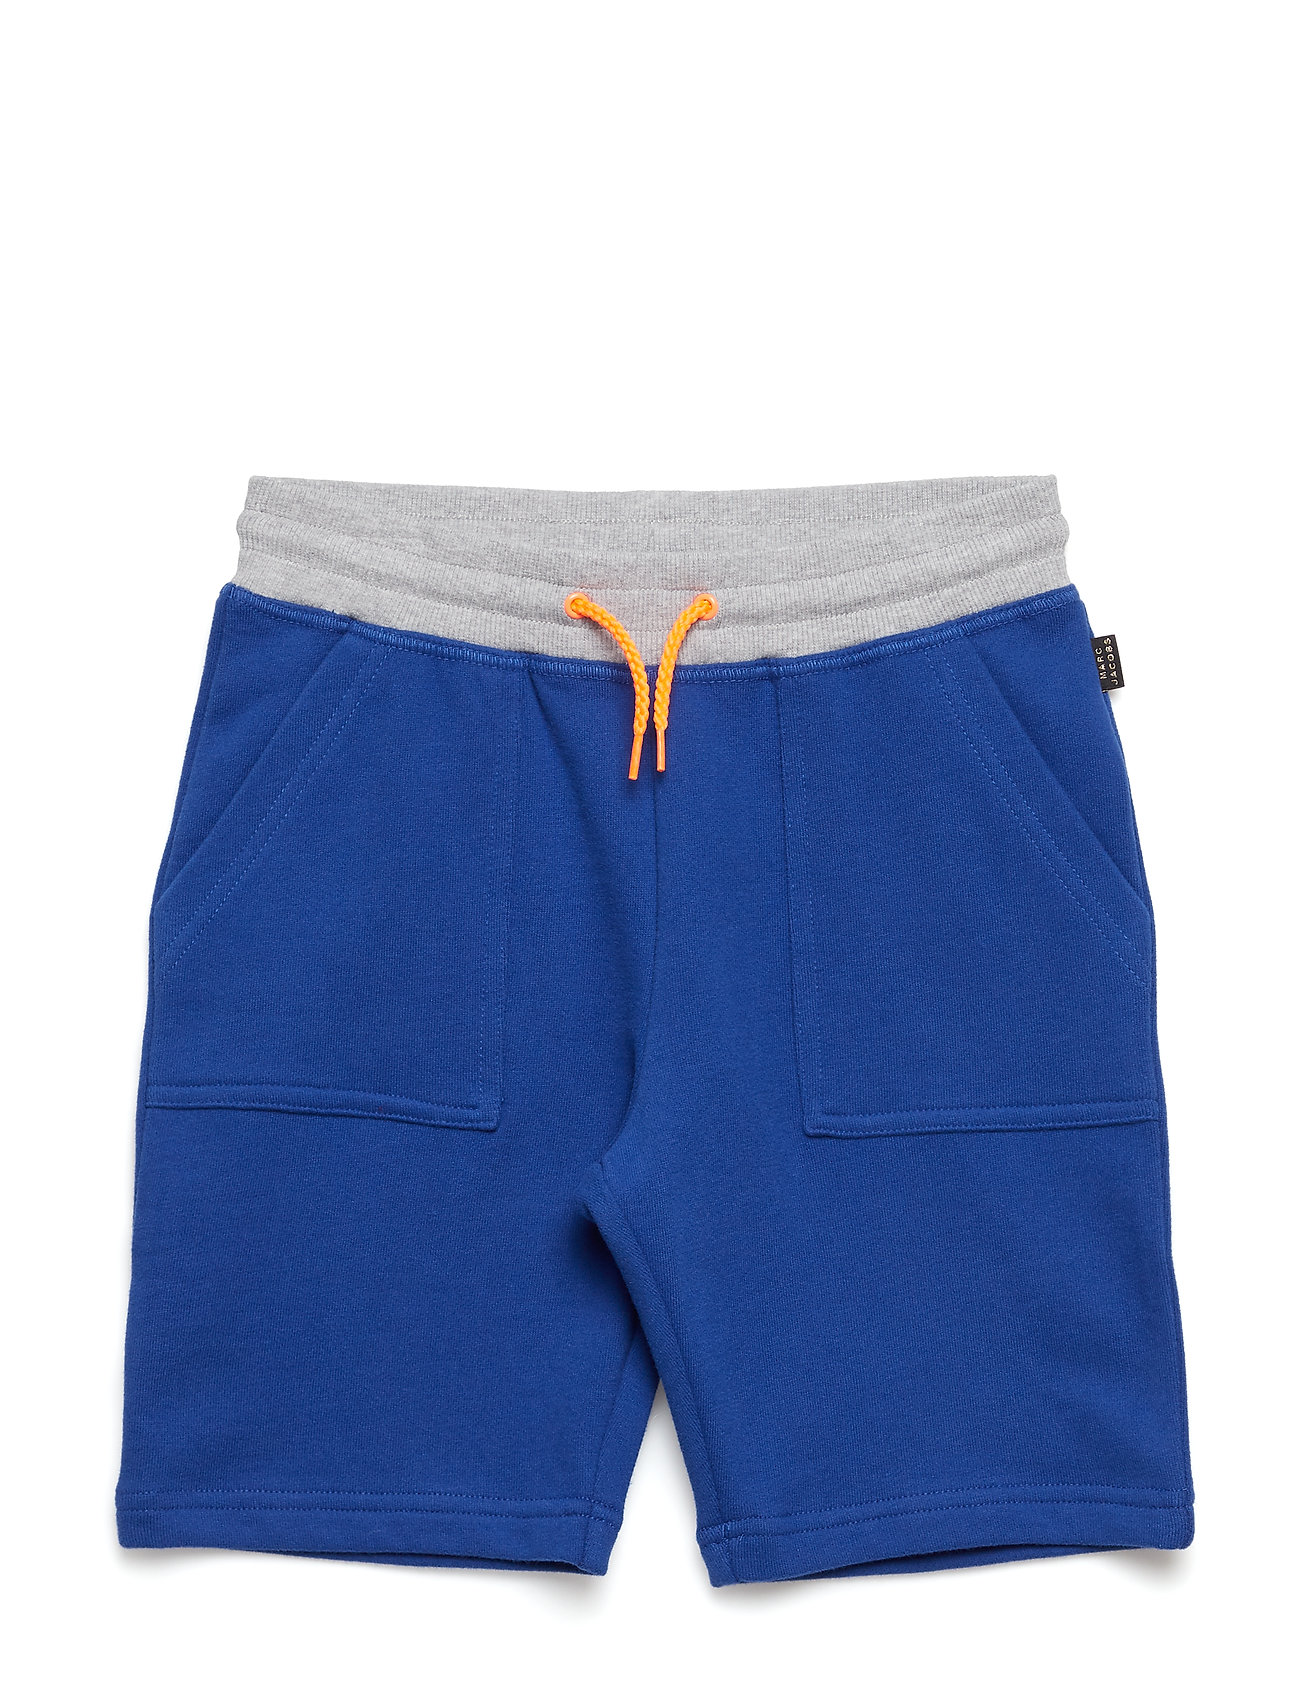 Little Marc Jacobs BERMUDA SHORTS - BLUE GREY